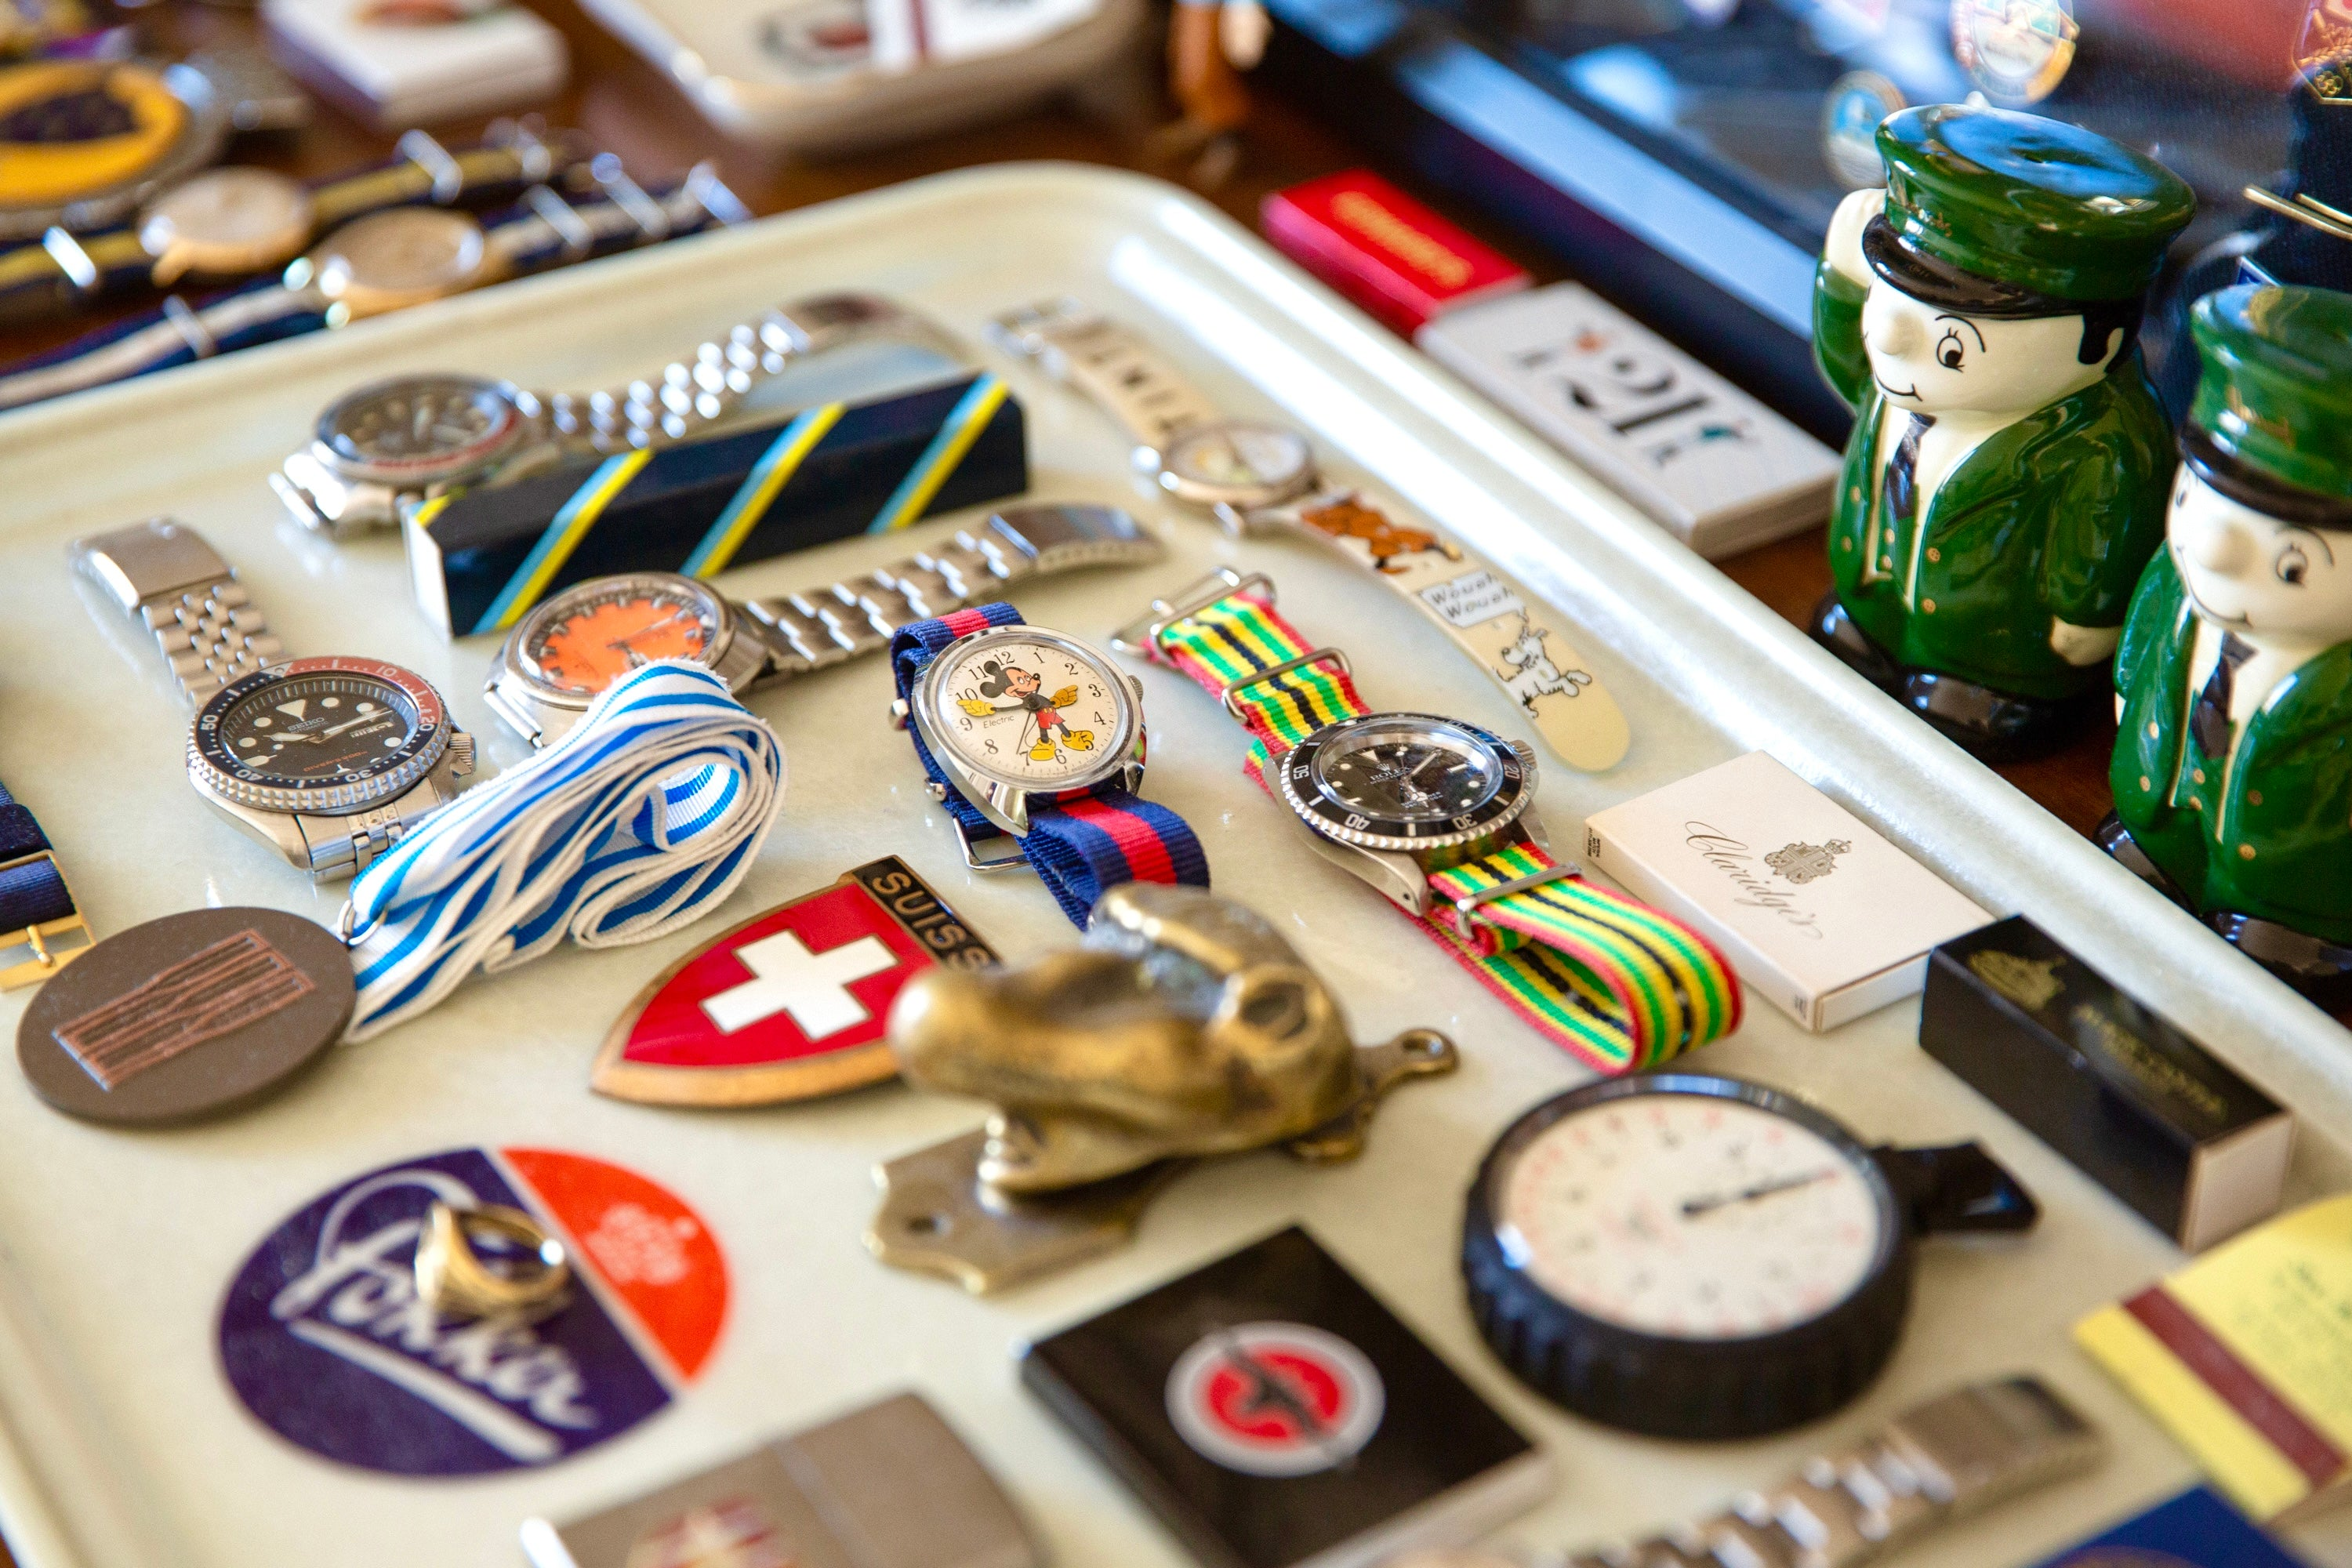 Close-up of some watches and medals